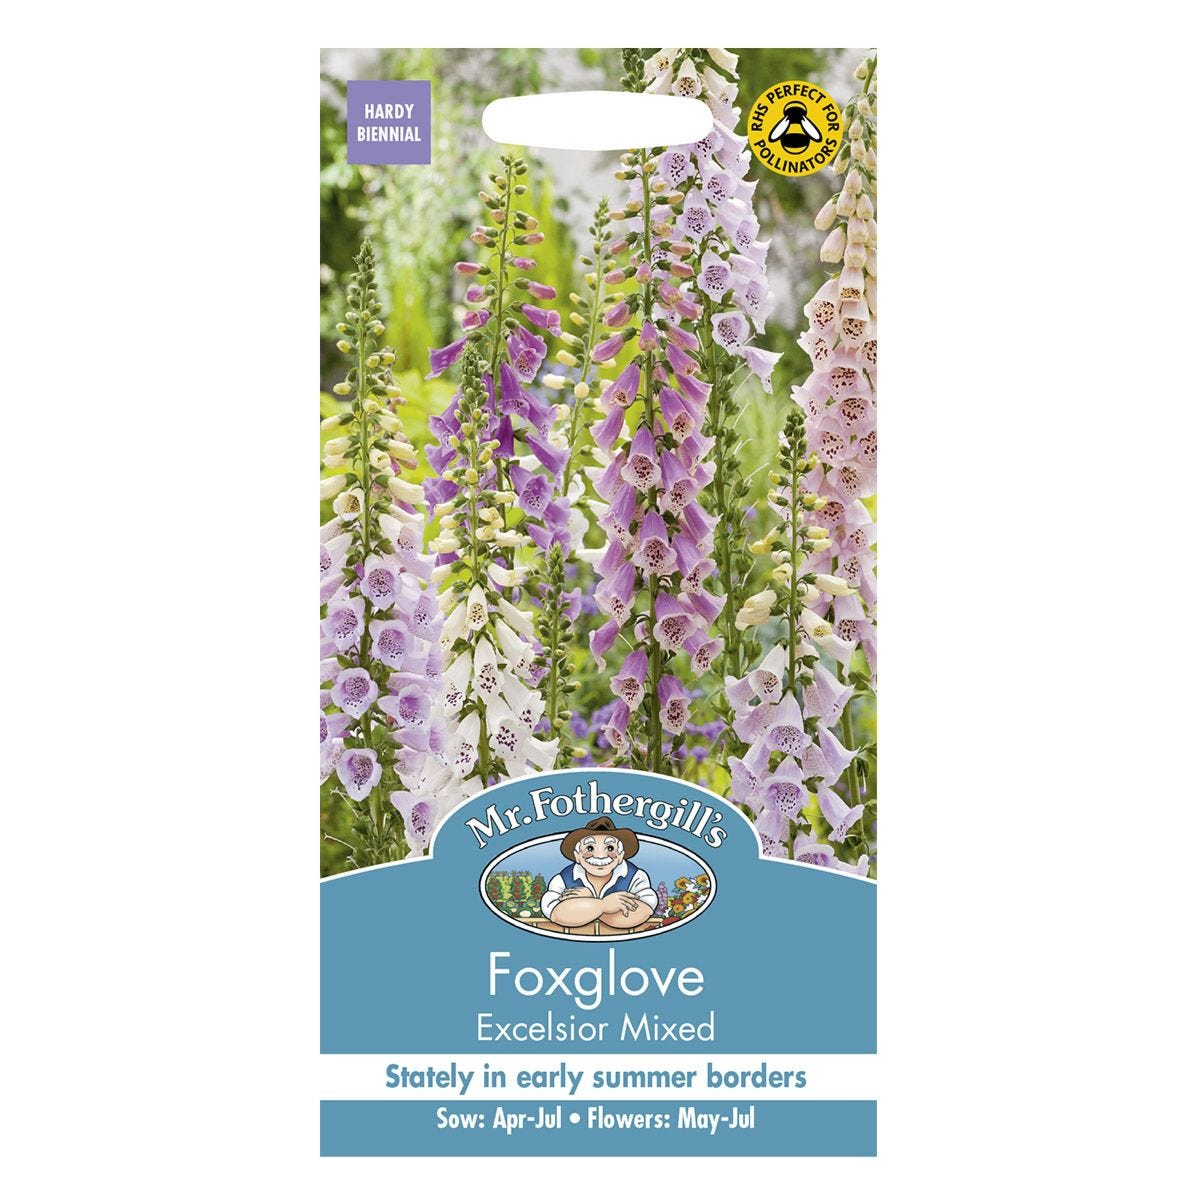 Mr Fothergill's Foxglove Excelsior Mixed Seeds